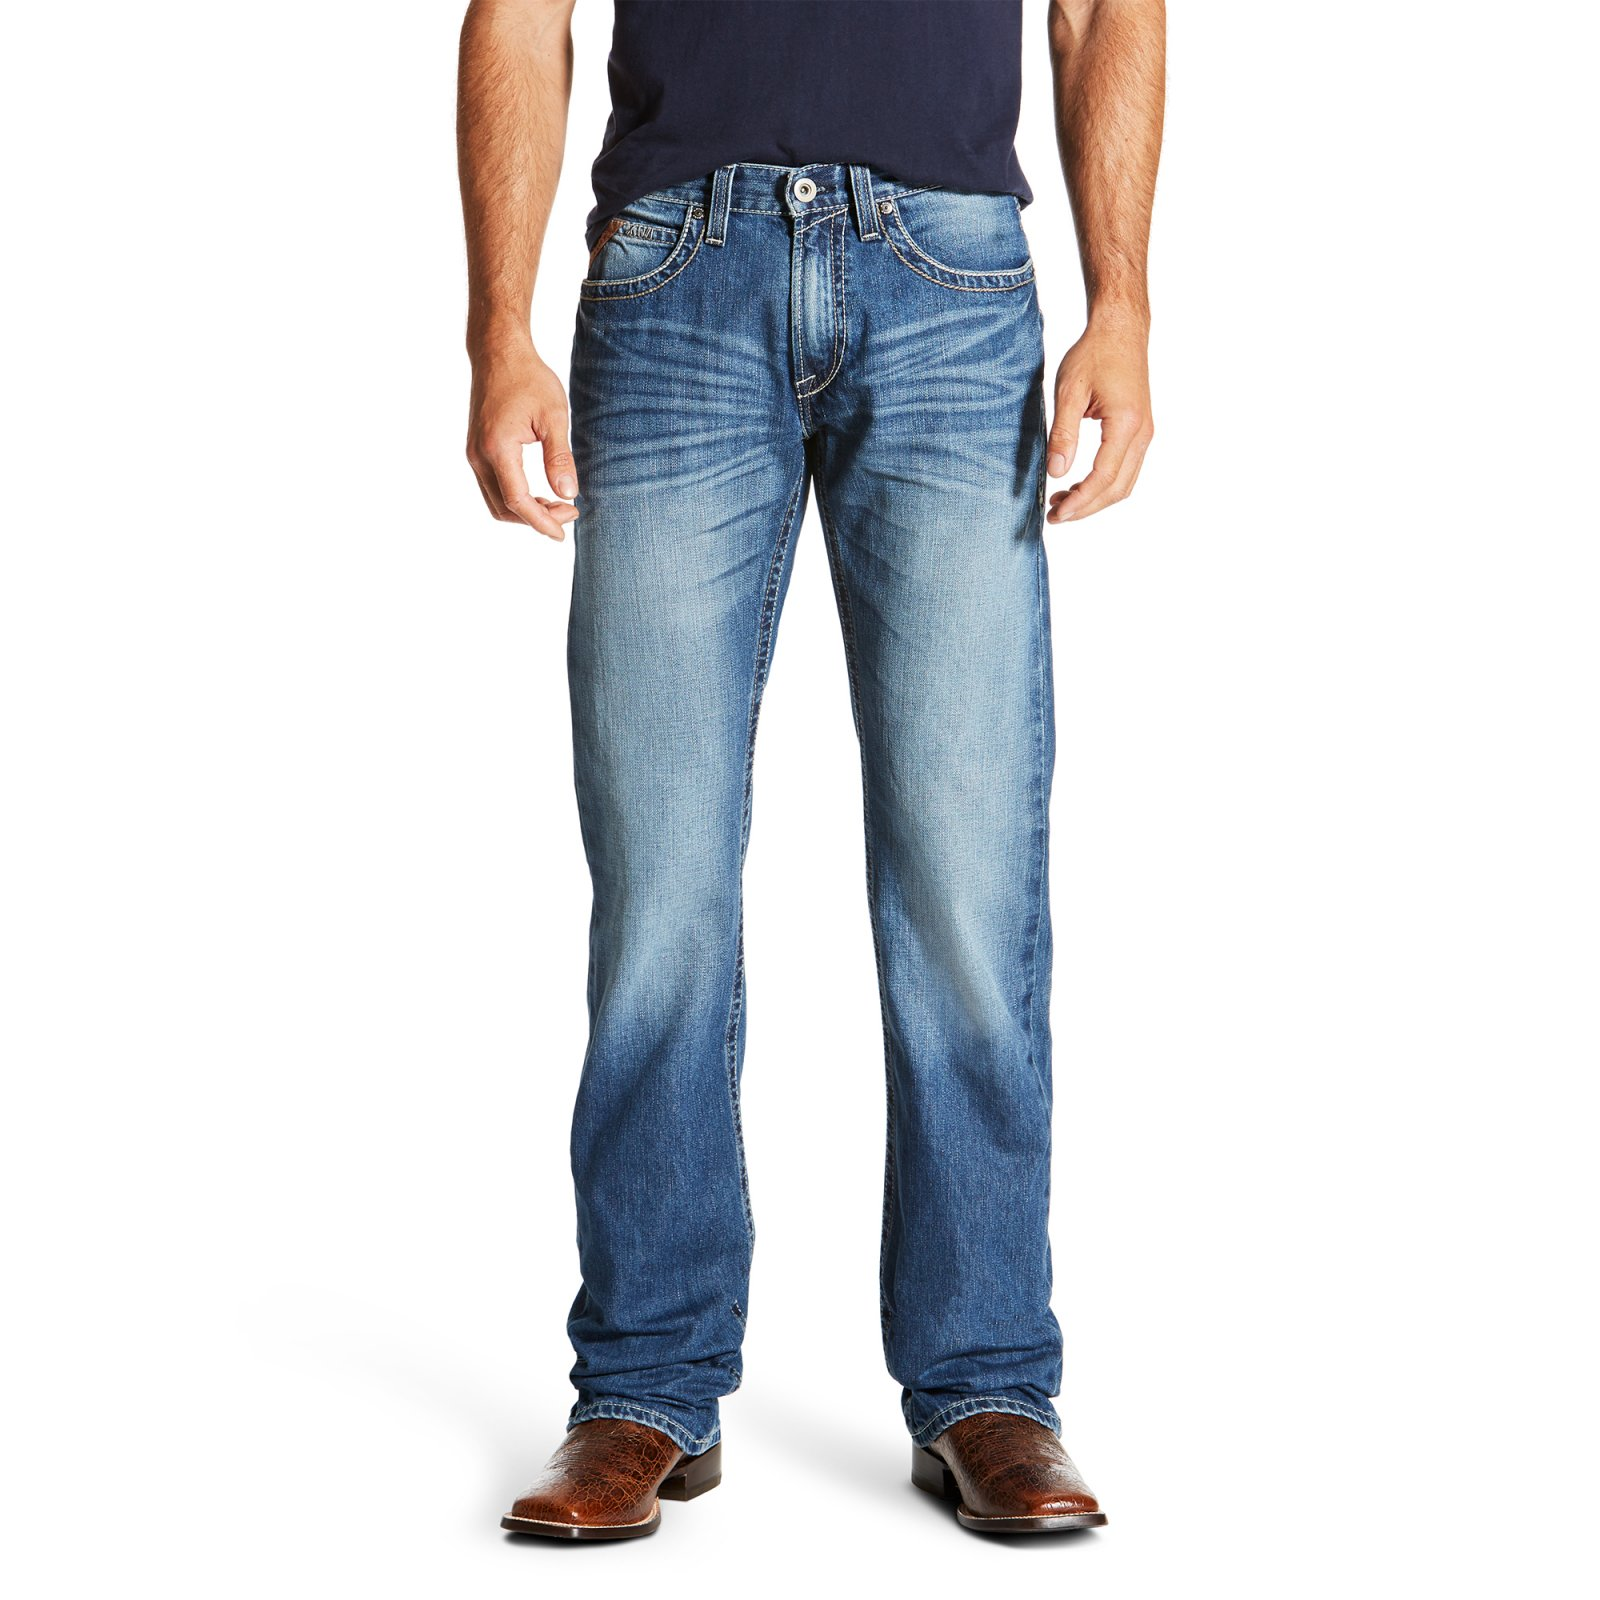 Men's M6 Adkins Midway Jean from Ariat